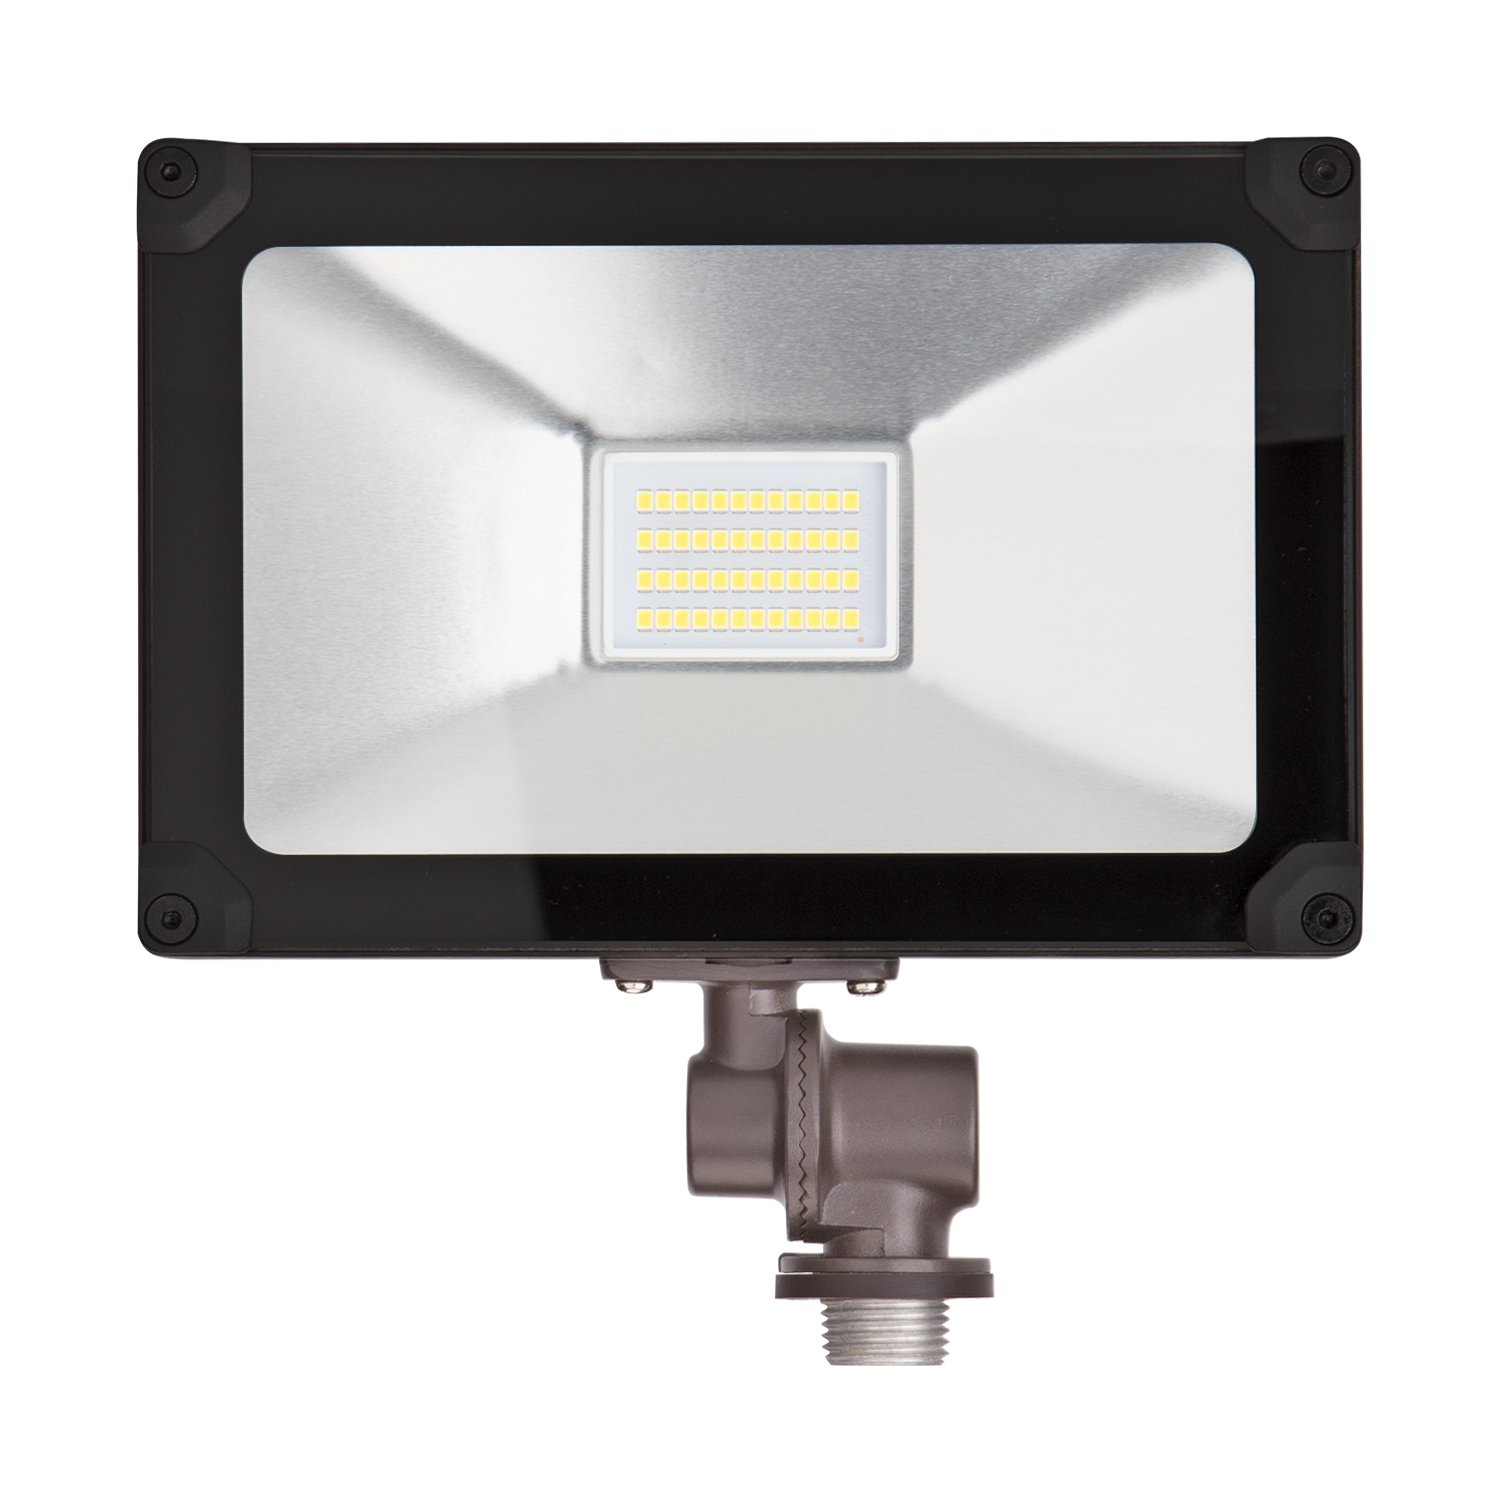 ALOTOA 20W LED Flood Light with Knuckle Mount Super Slim SMD Outdoor [2000lm] Landscape Security Waterproof for Garden Piazza Bill Boards Factory (Natural White 4000K)